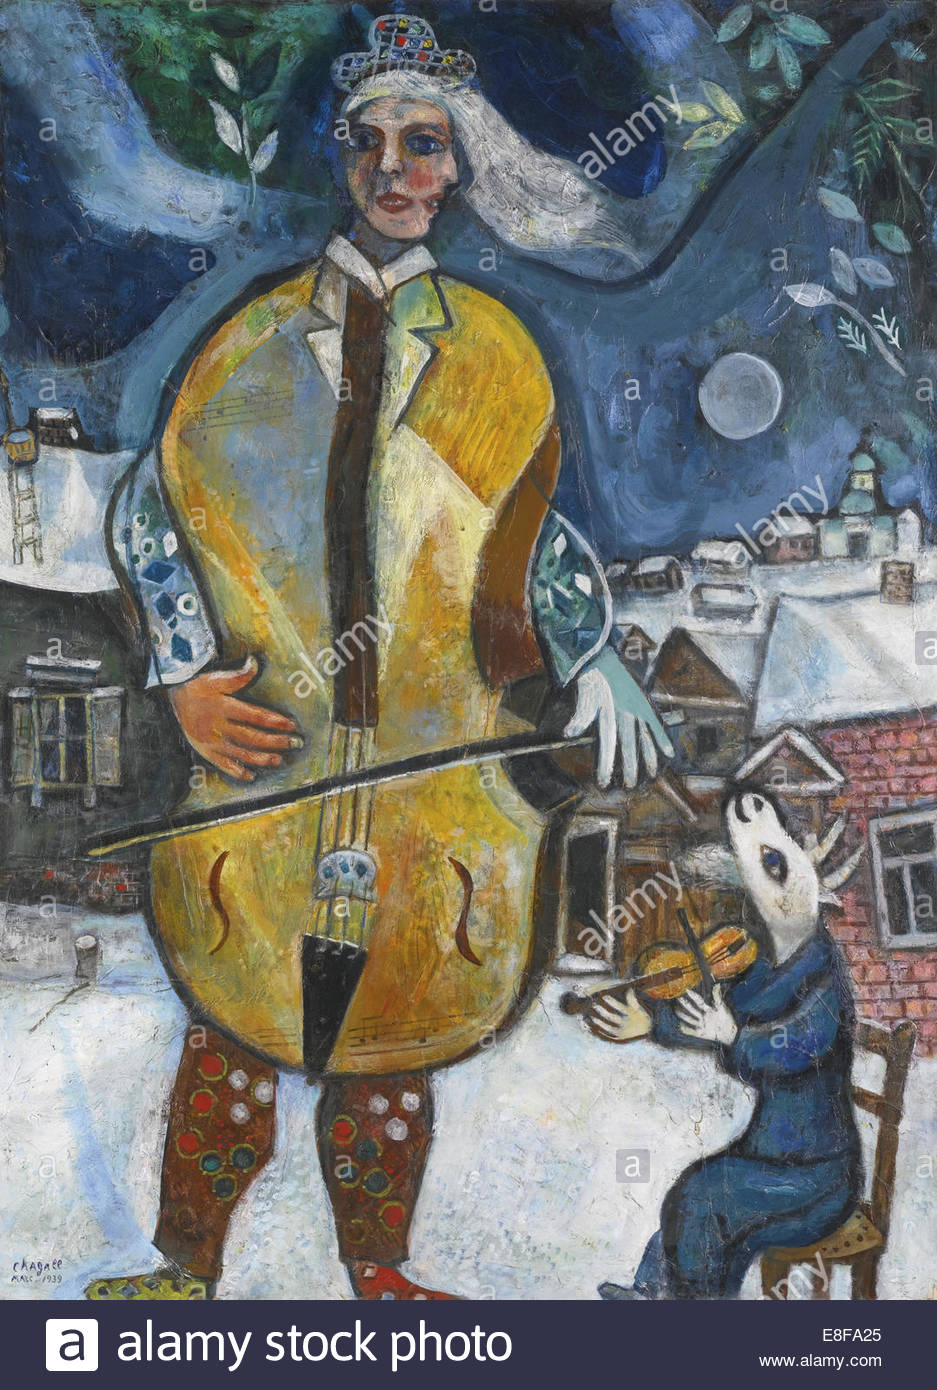 The Cellist. Artist: Chagall, Marc (1887-1985) - Stock Image